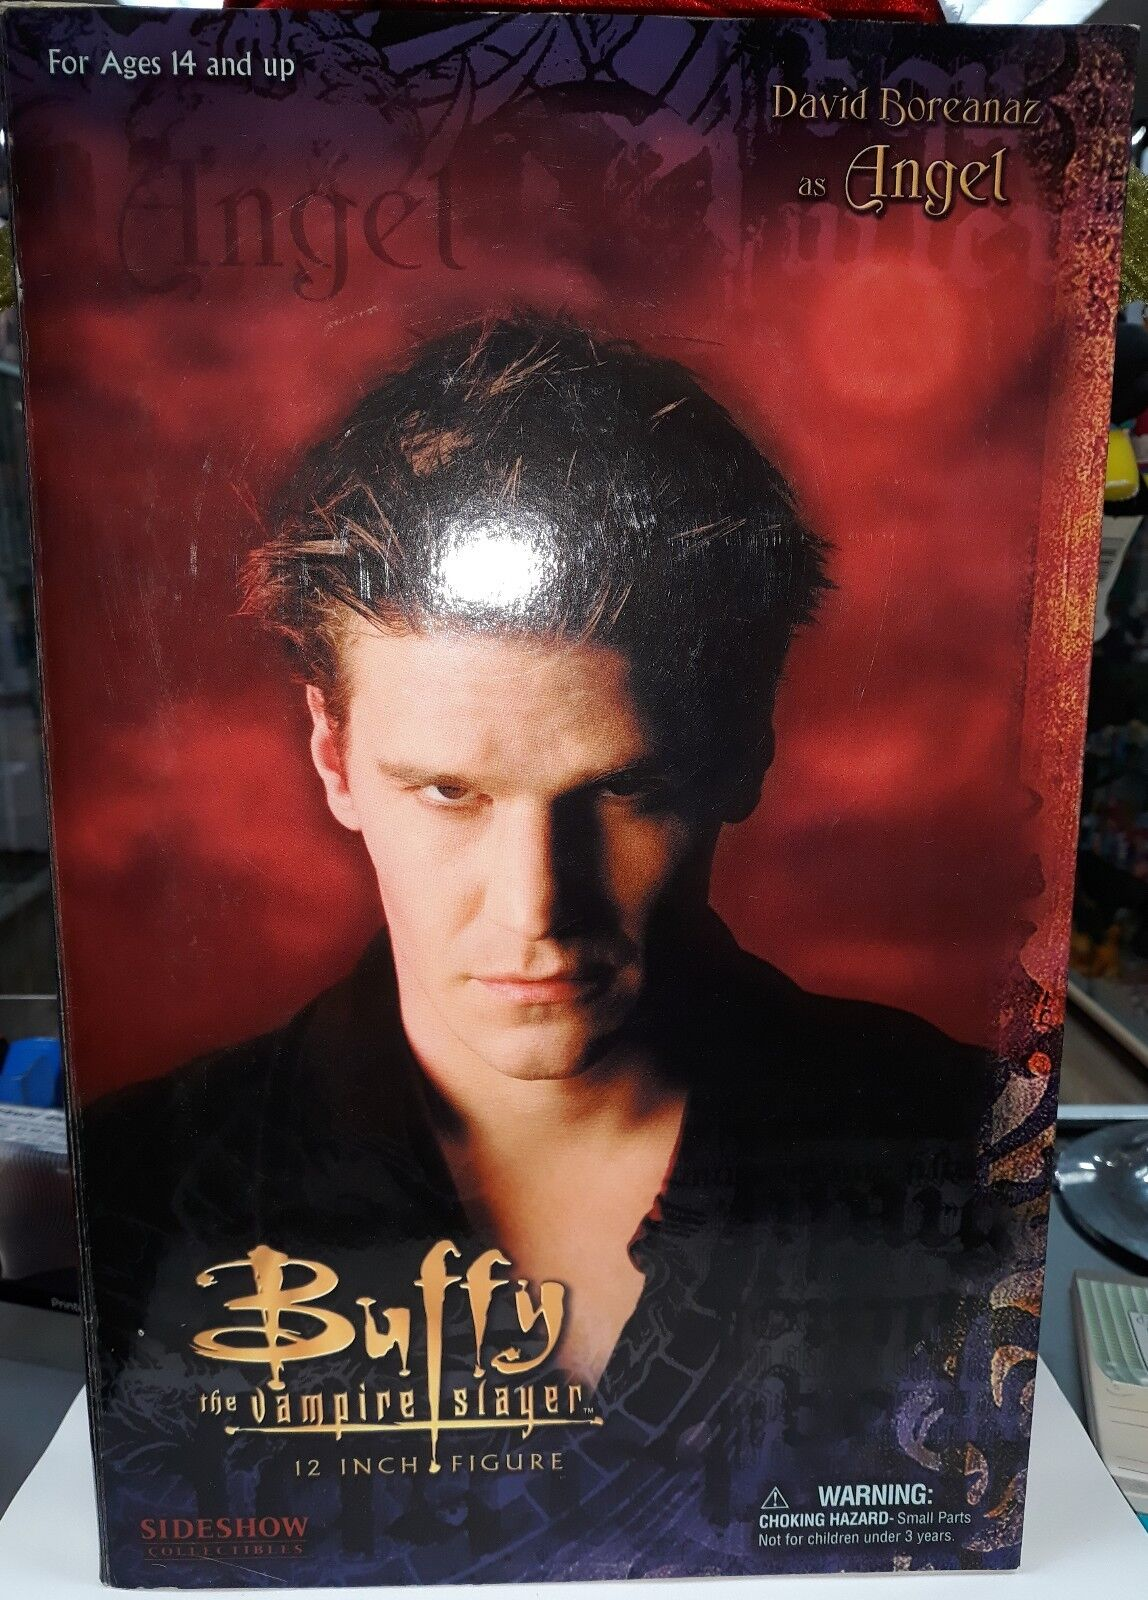 Sideshow  16 buffy the vampire slayer david boreanaz vampire angel 12 figure  réductions incroyables